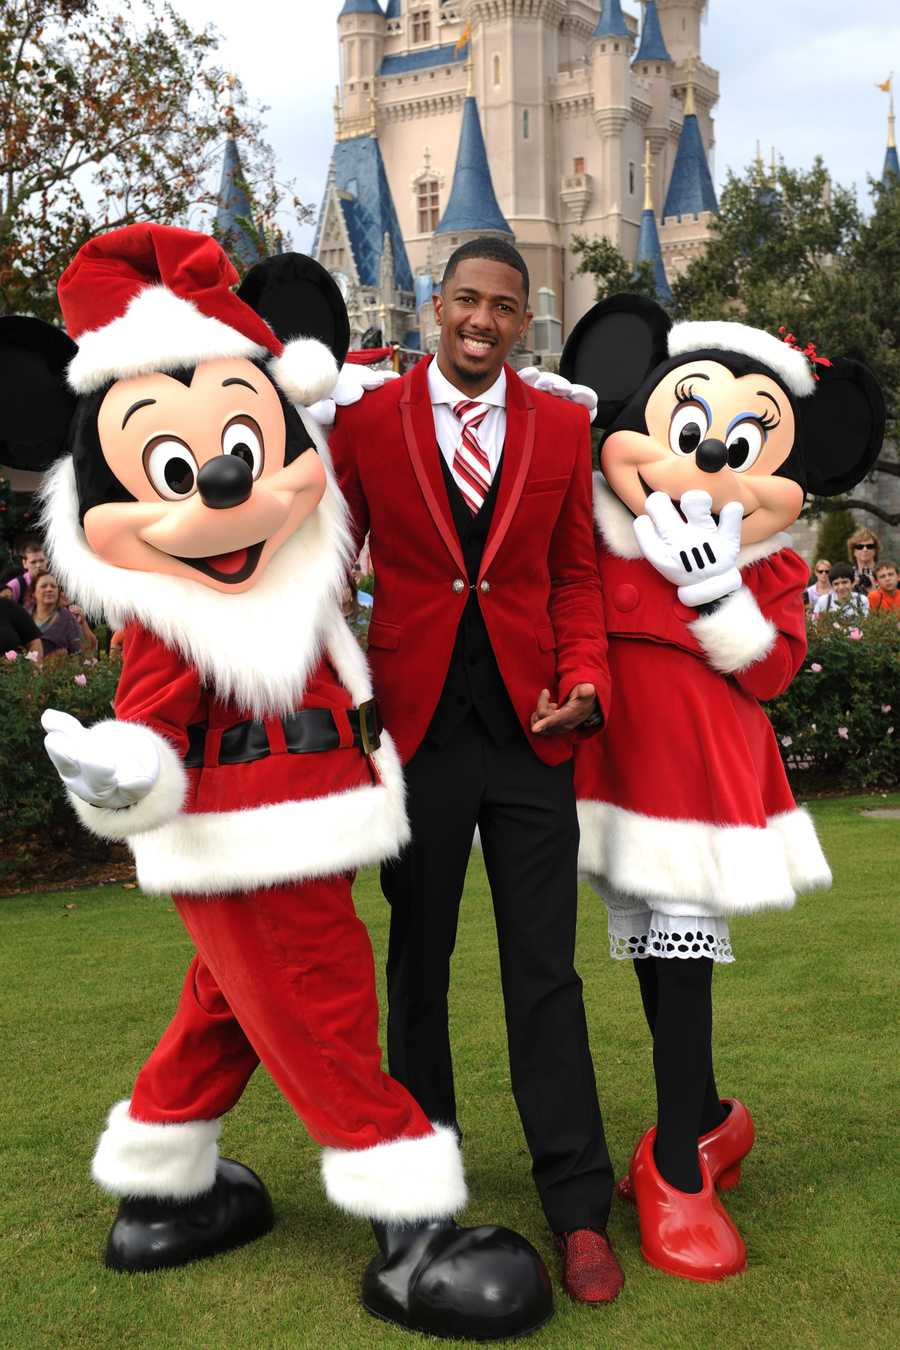 """Actor Nick Cannon points to his red sparkling holiday shoes as he poses with Mickey Mouse and Minnie Mouse while taping the """"Disney Parks Christmas Day Parade"""" TV special in the Magic Kingdom park at Walt Disney World in Lake Buena Vista, Fla. Cannon is one of the hosts for the holiday special."""